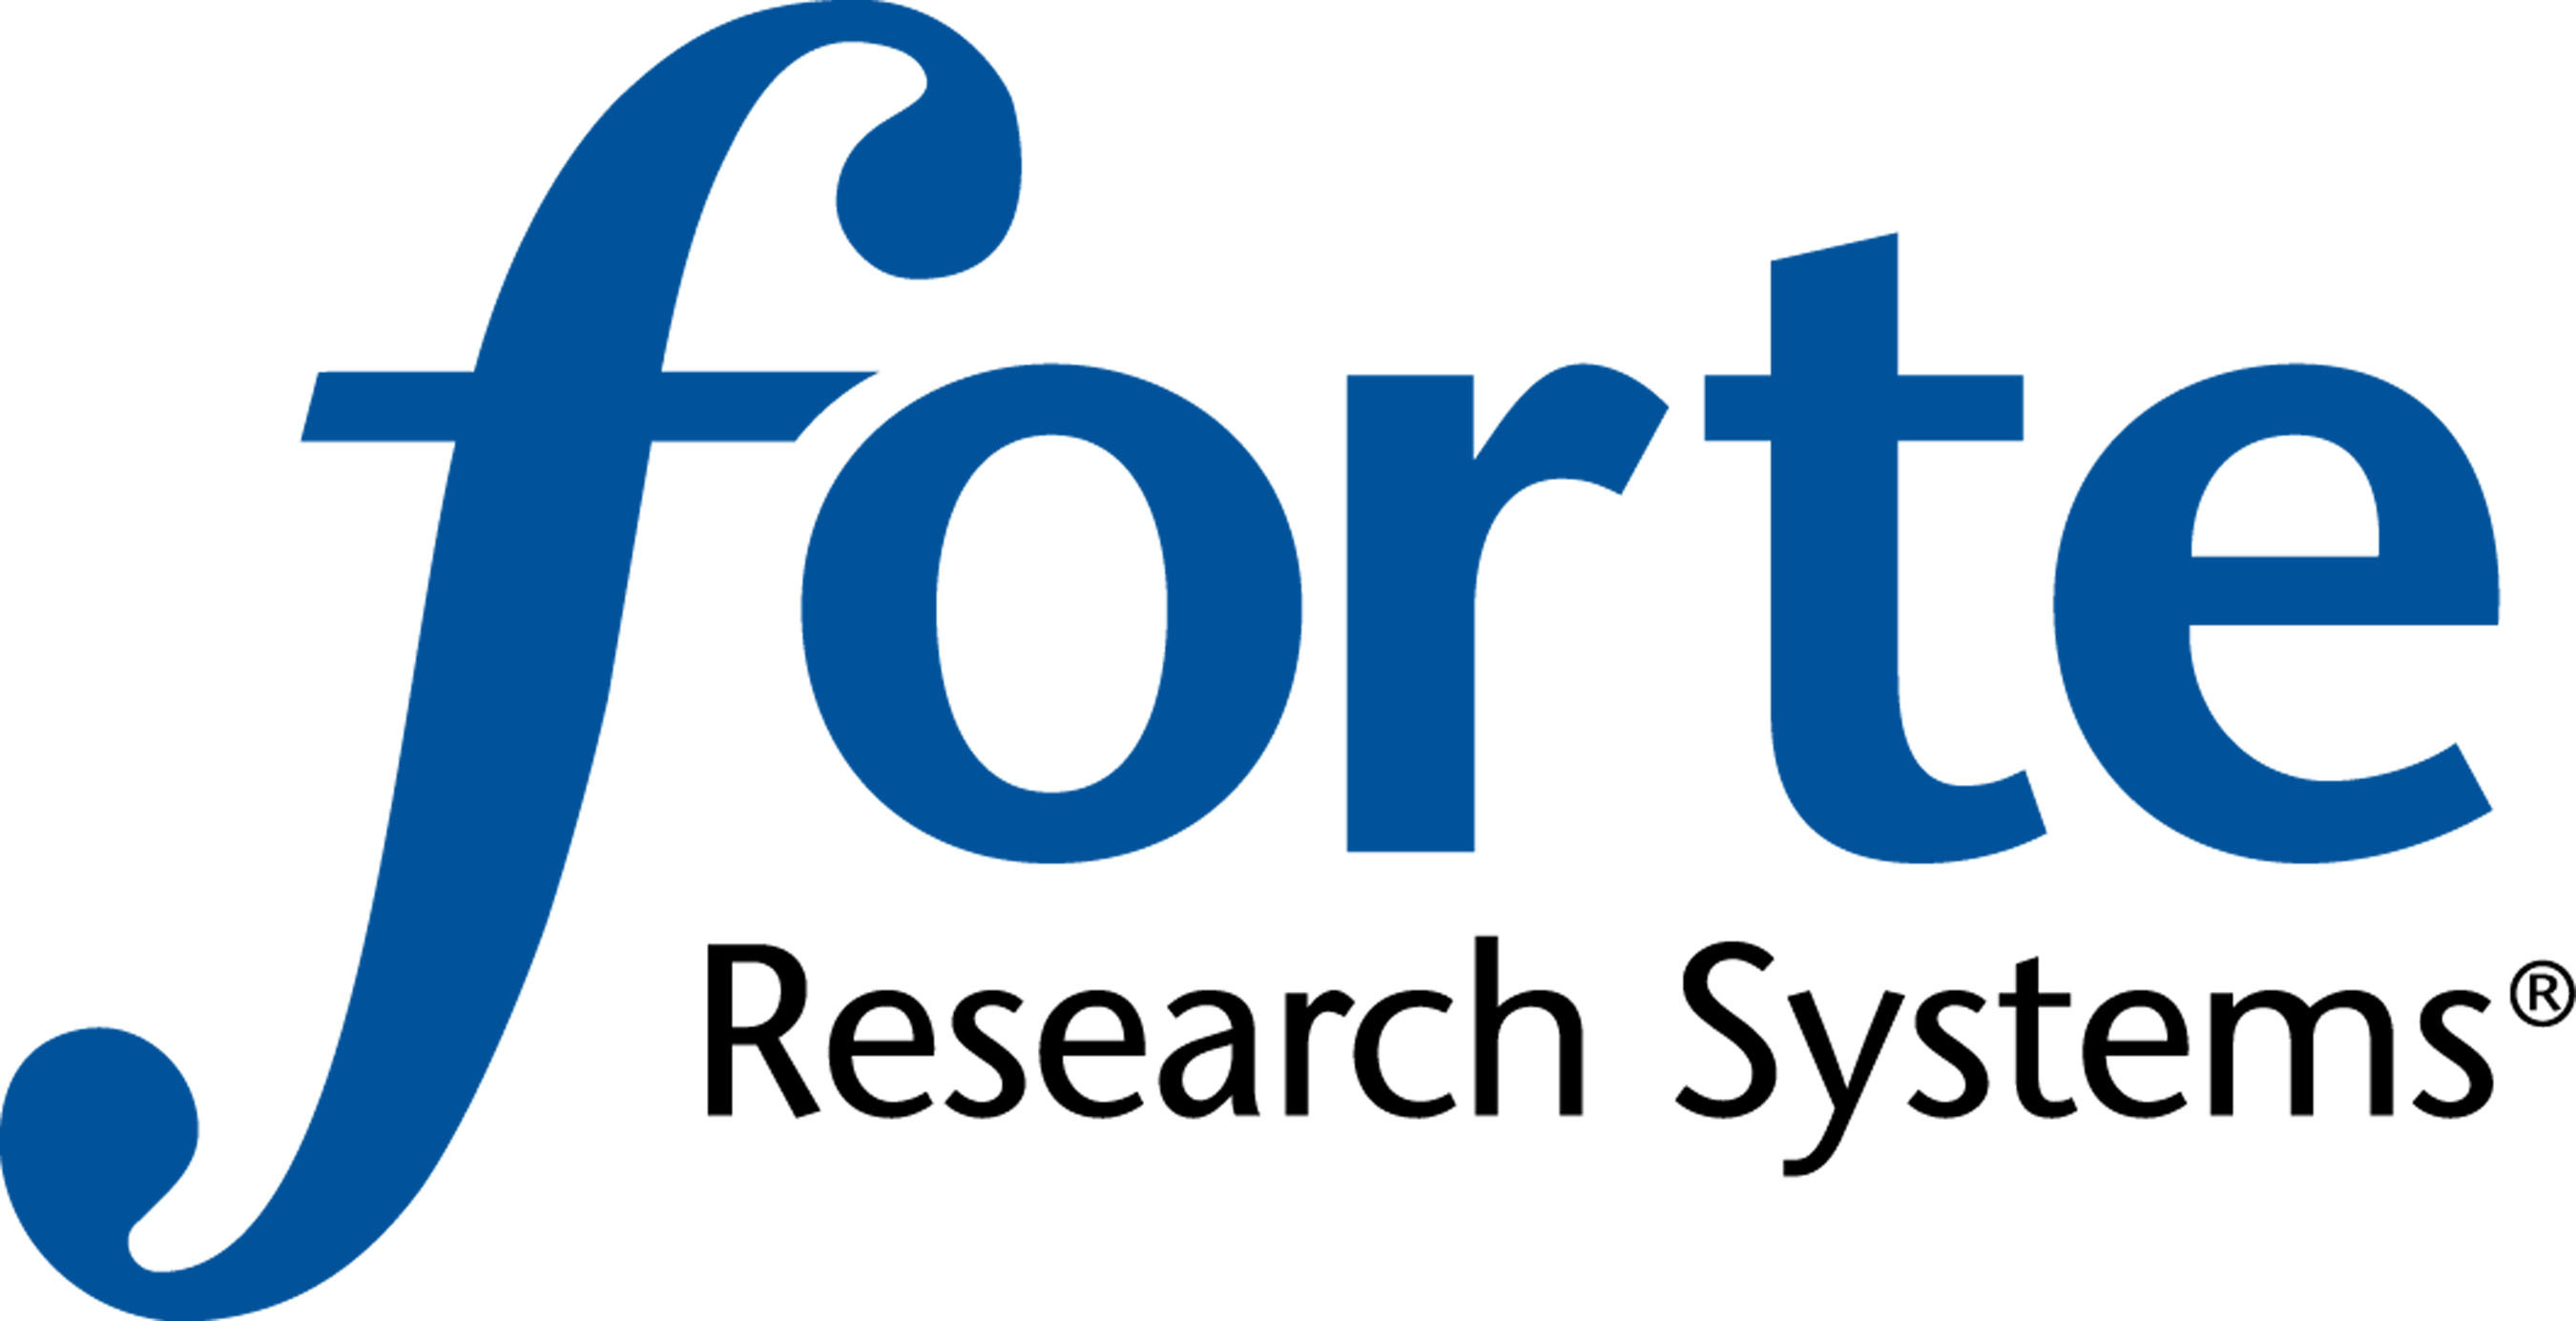 Forte Research Systems Secures Investment From Primus Capital